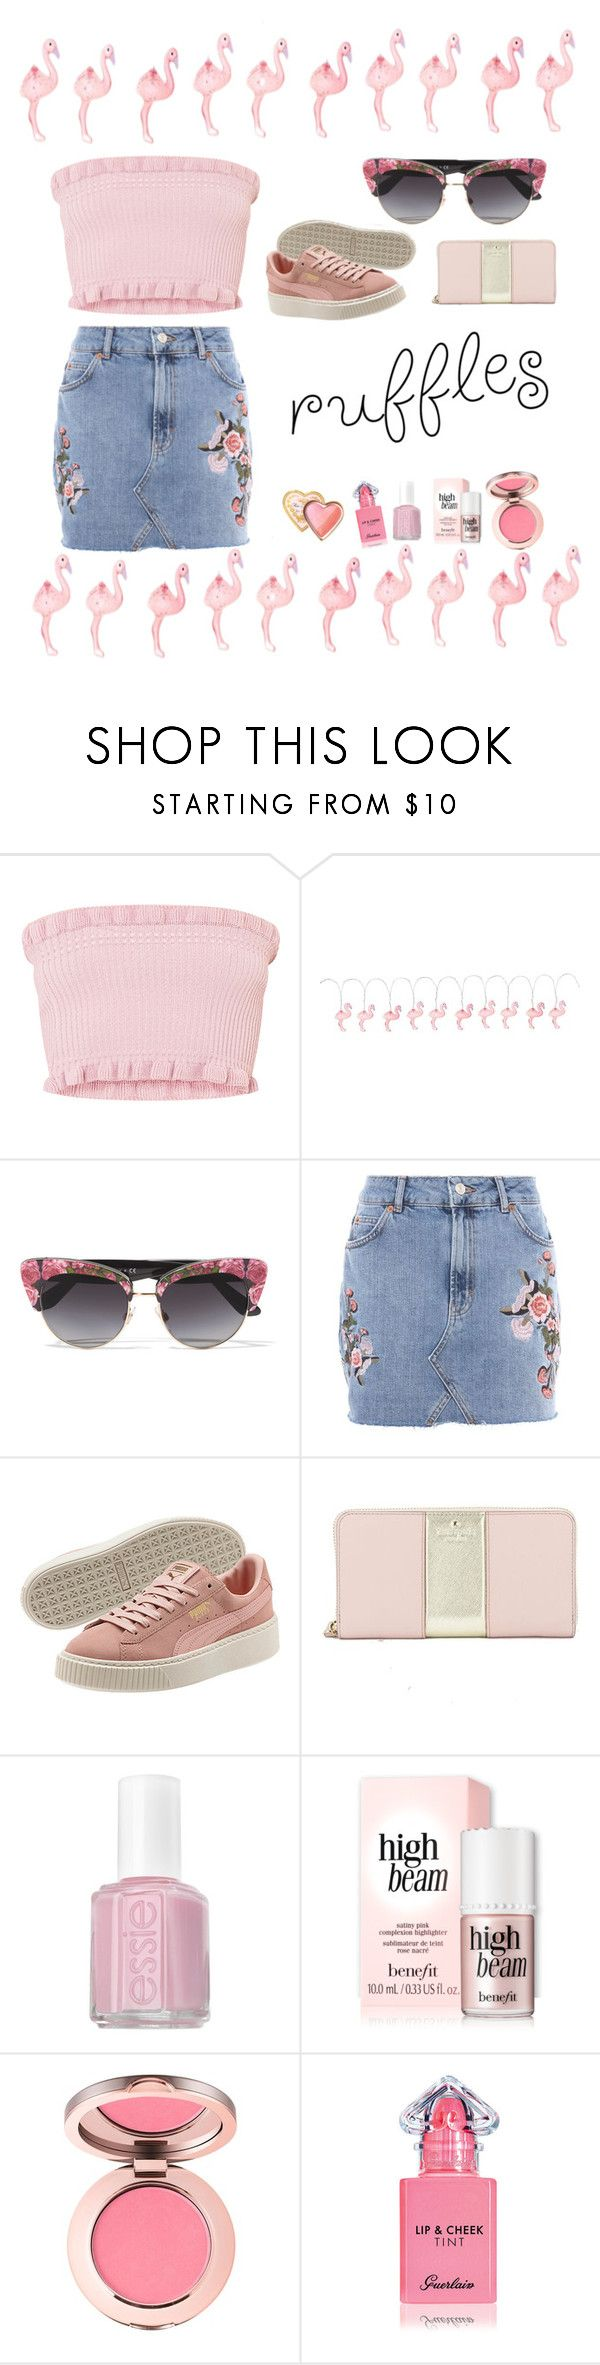 """Pinky ruffles"" by begumbs ❤ liked on Polyvore featuring Sunnylife, Dolce&Gabbana, Topshop, Kate Spade, Essie, Guerlain, Too Faced Cosmetics, ruffles and ruffledtops"